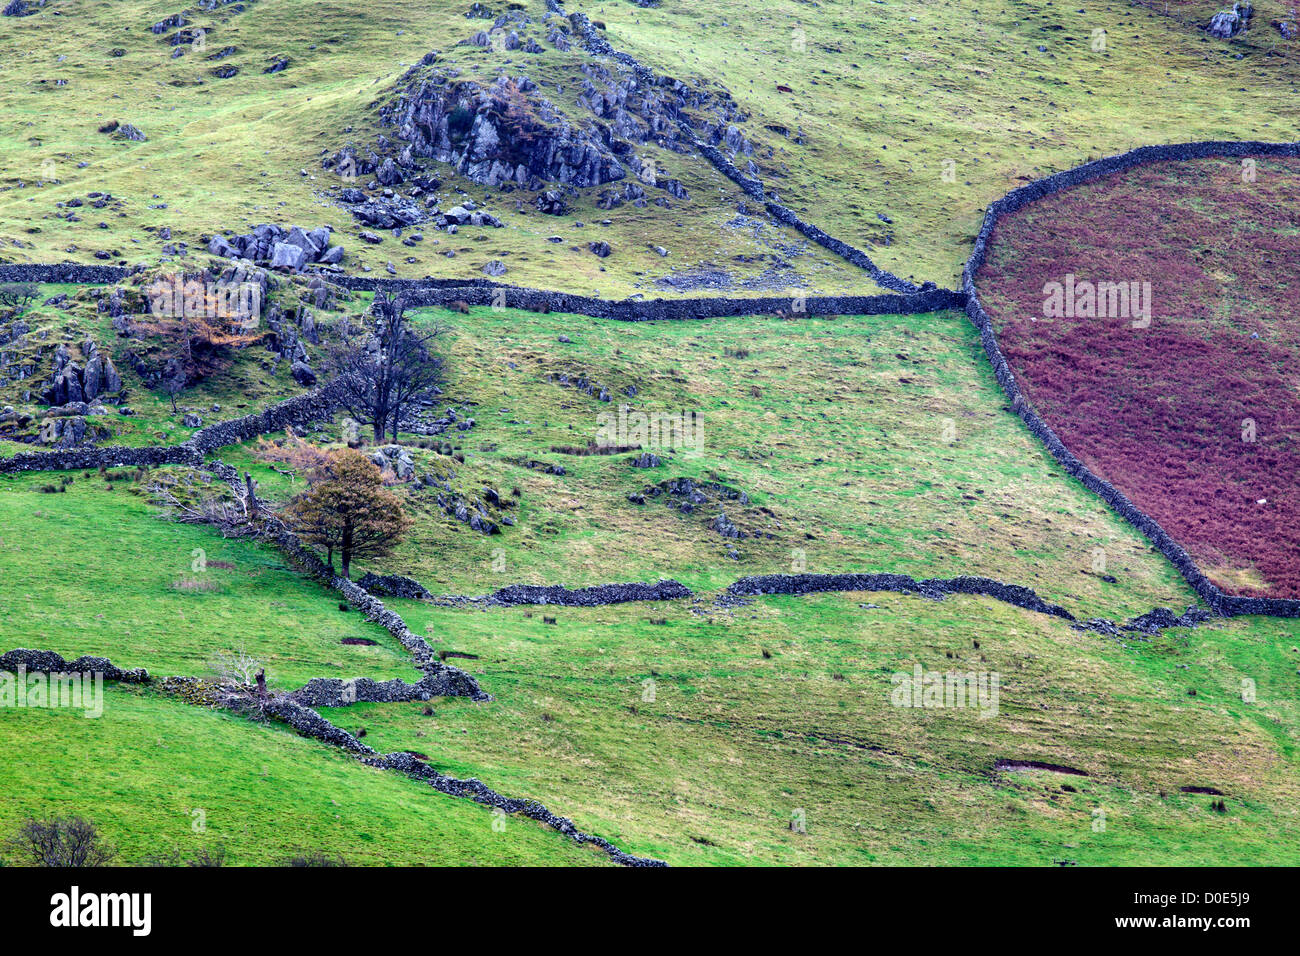 Hartsop Dodd from Brothers Water The Lake District Cumbria England - Stock Image